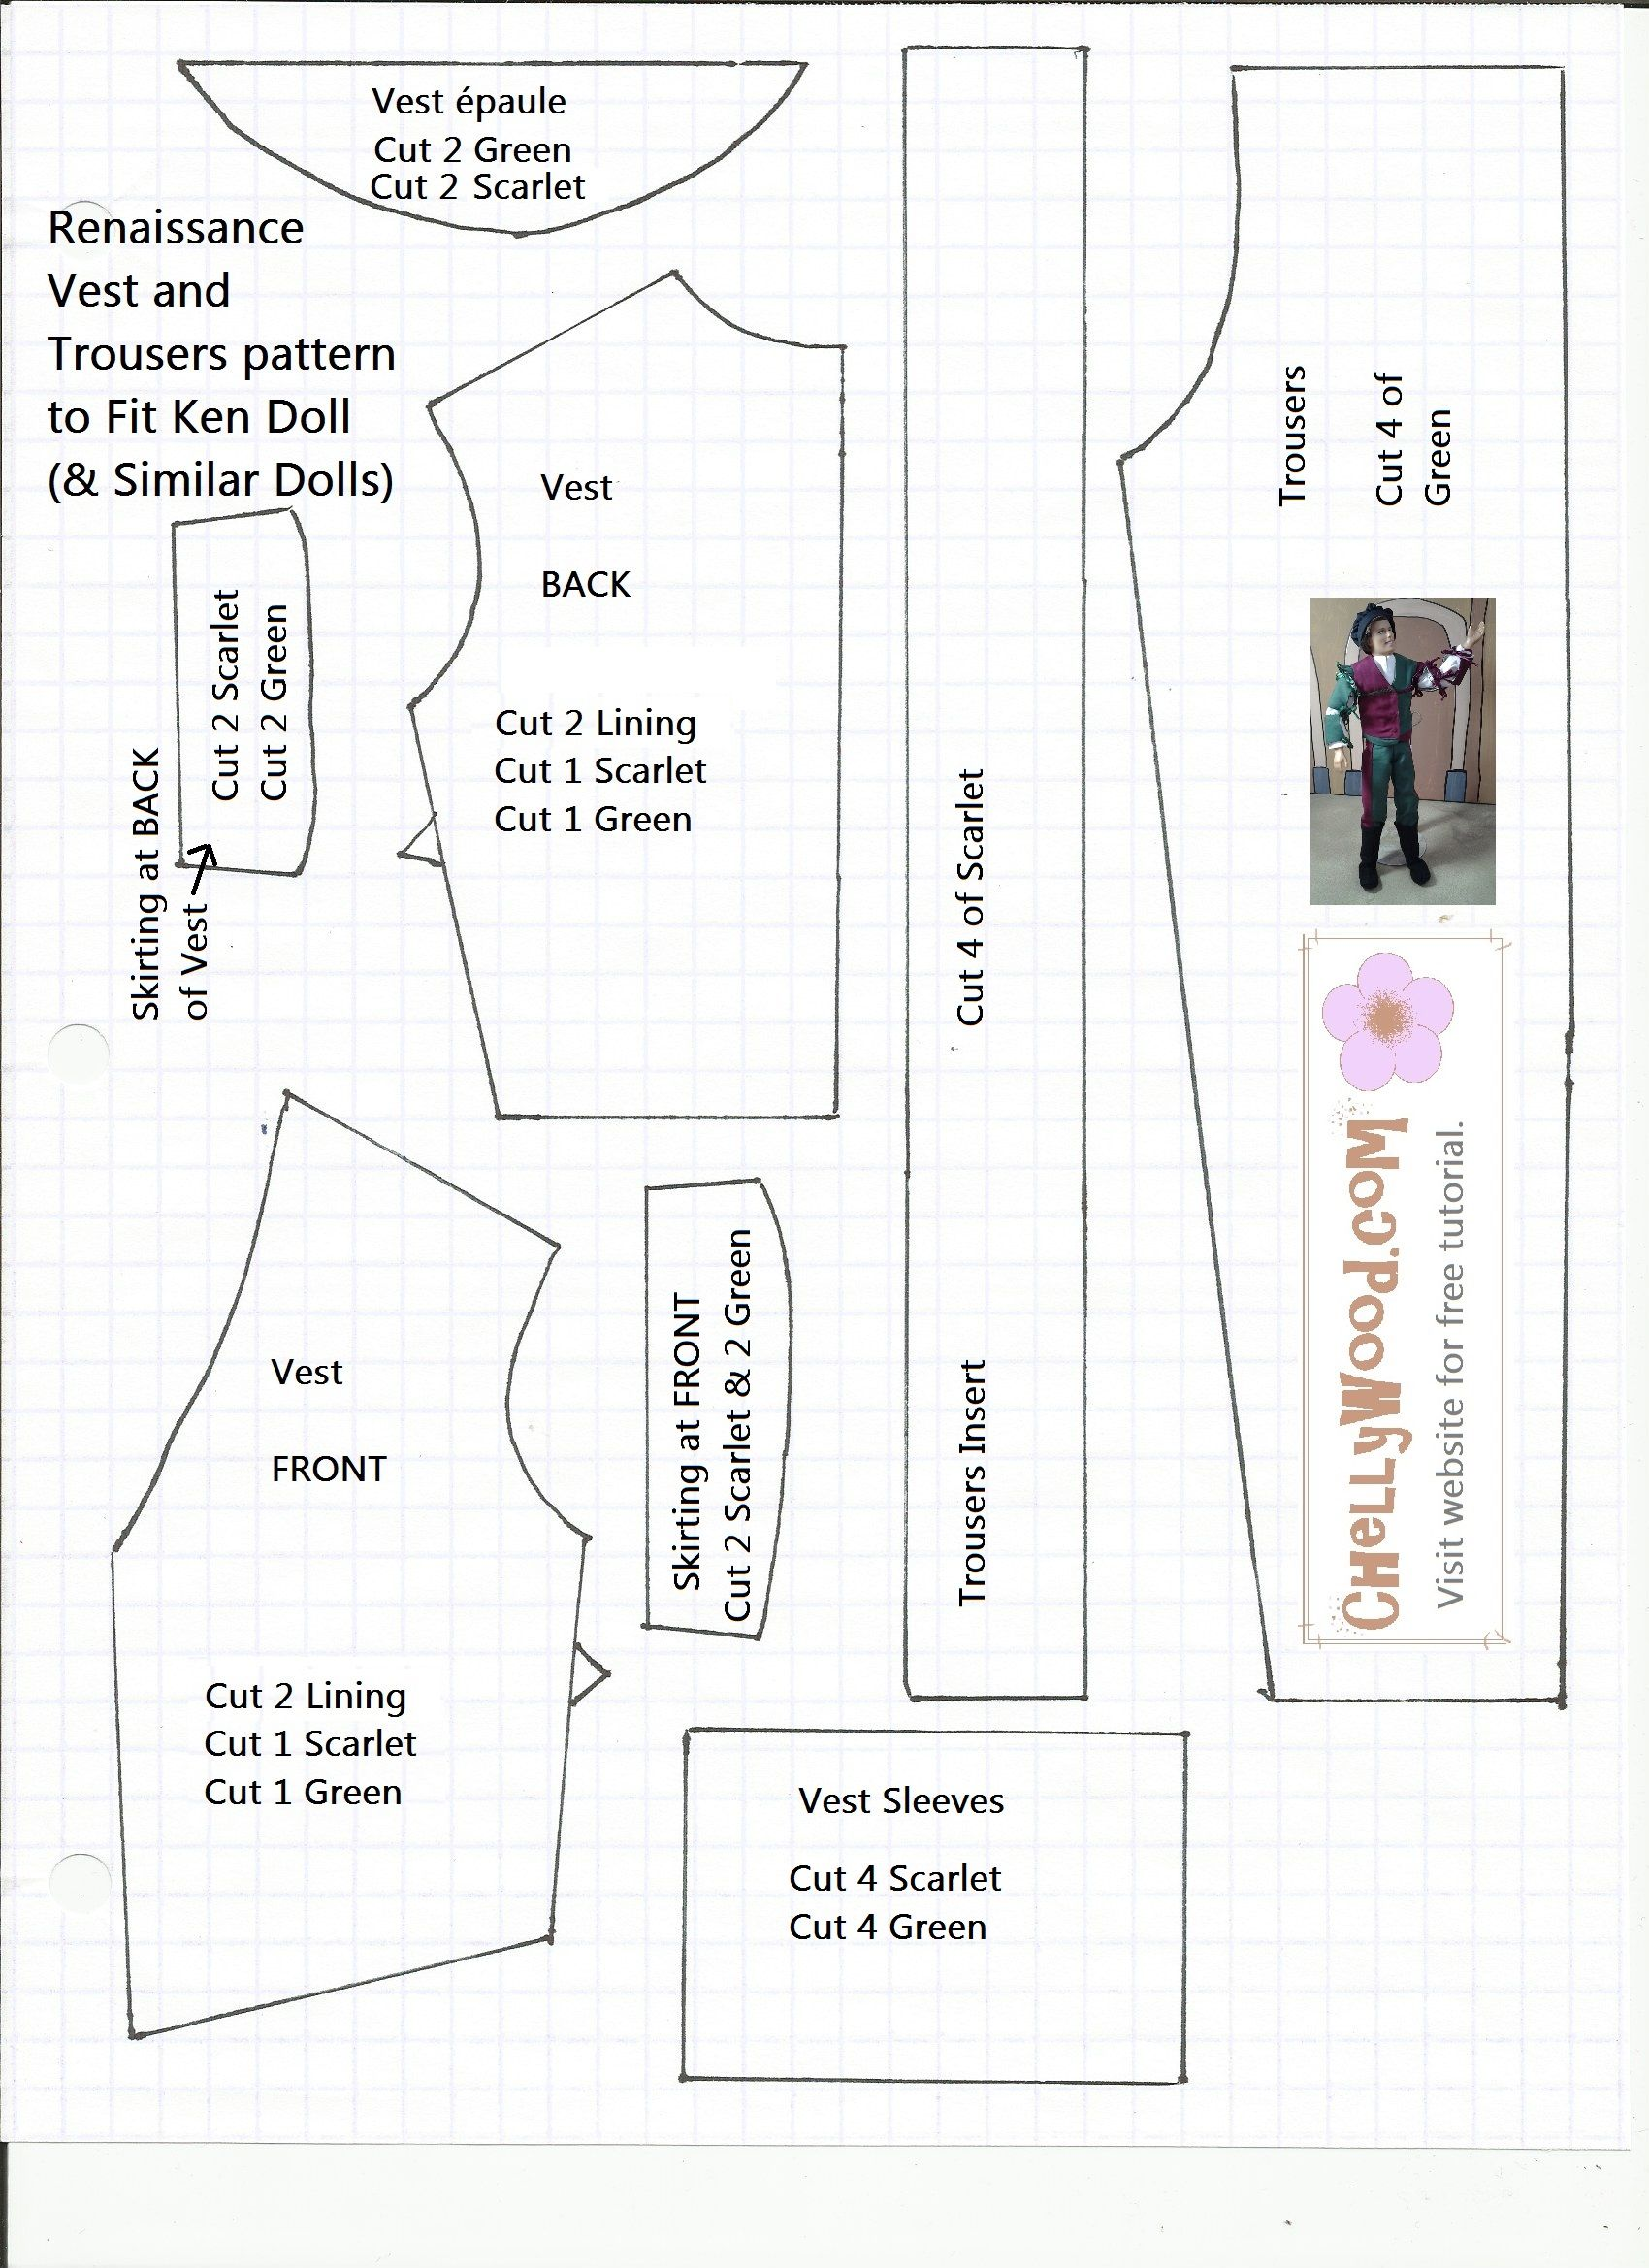 photograph relating to Free Printable Ken Doll Clothes Patterns referred to as Routine for Bicolor Renaissance Jacket and Trousers for Ken